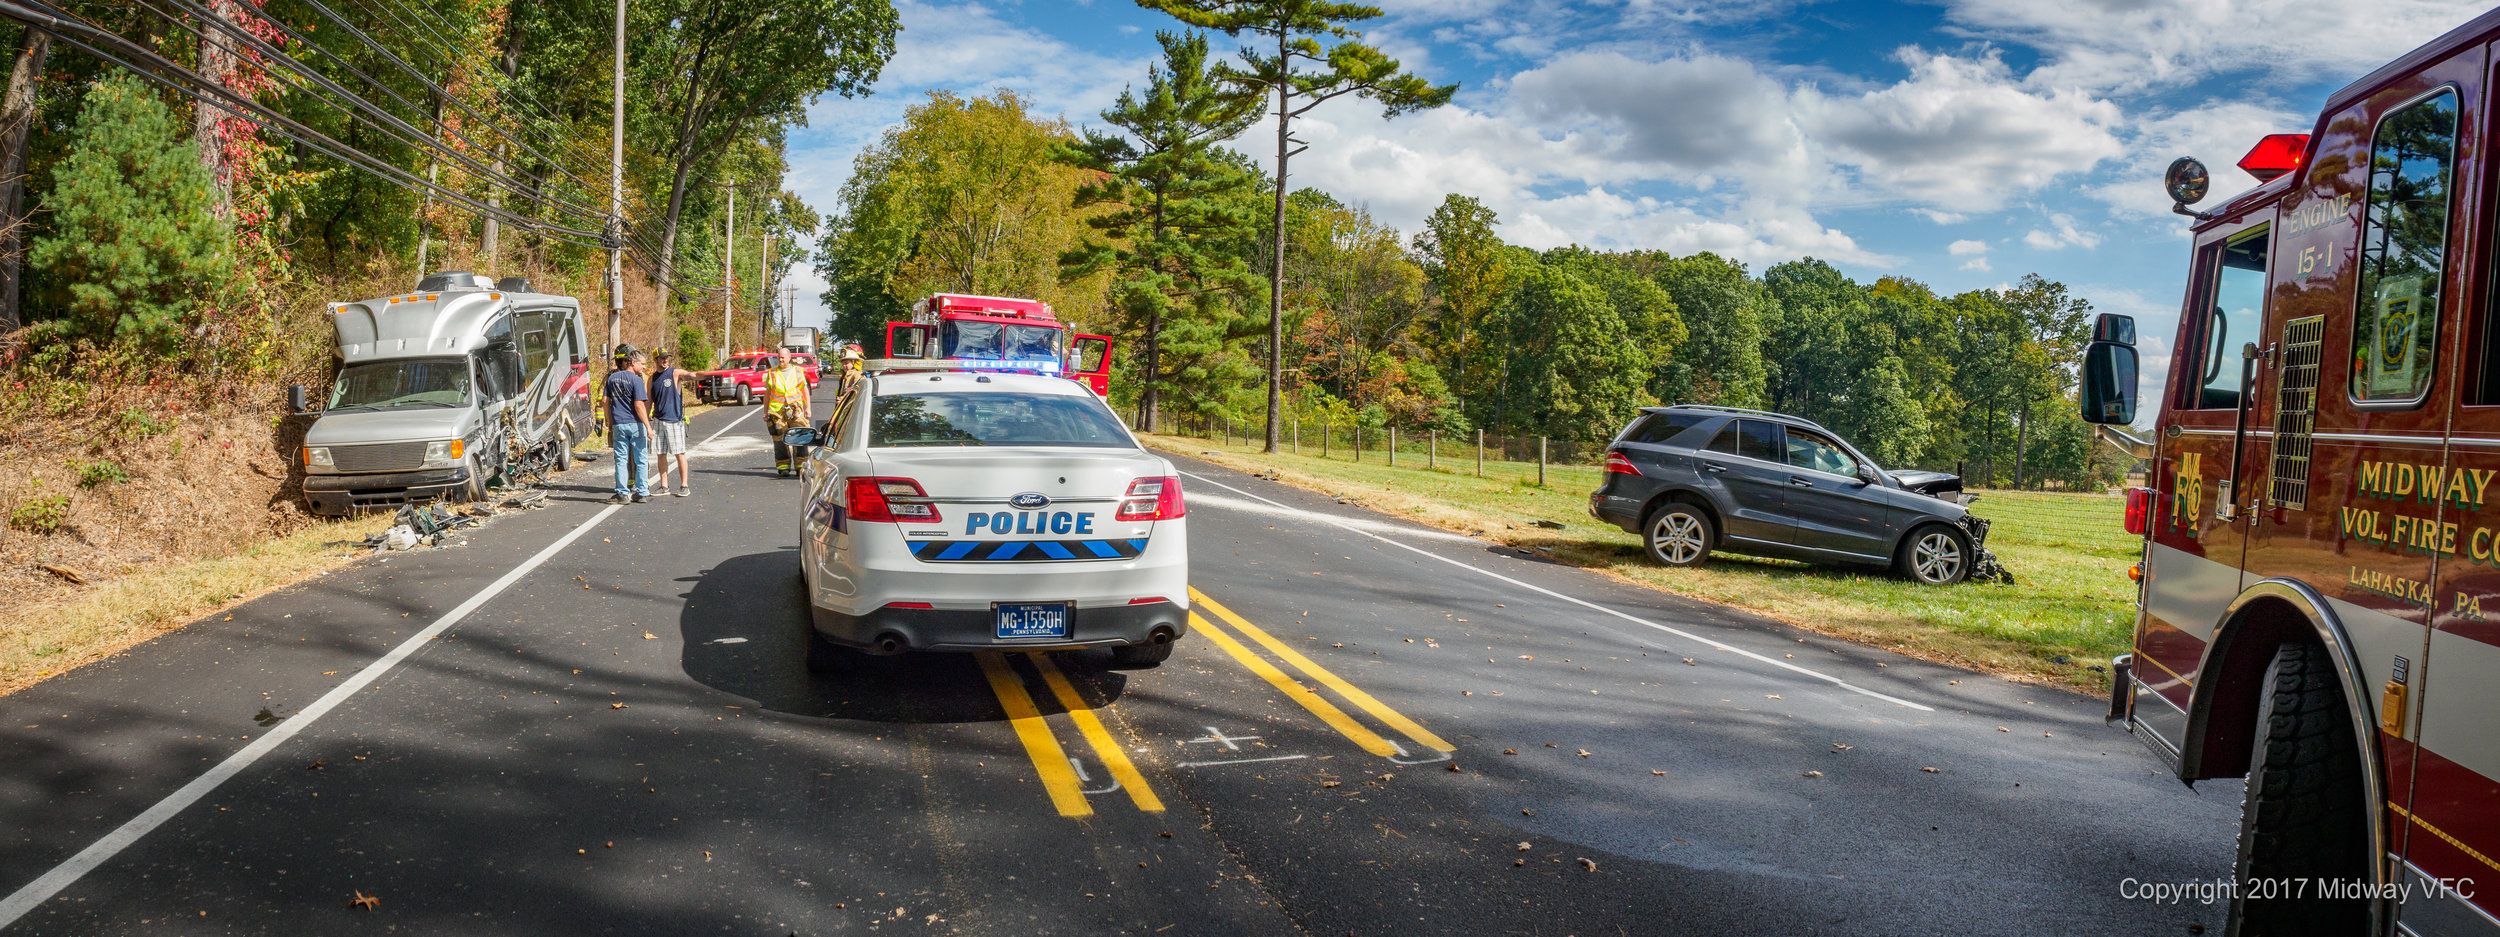 2017.10.07 at 12:18PM Midway Volunteer Fire Company responded to a two vehicle accident with an entrapment. One person was extricated from the vehicle and transported to an area trauma center. Route 202 at Bycroft Road was reopened approximately 1:30PM. There were no injuries to first responders.